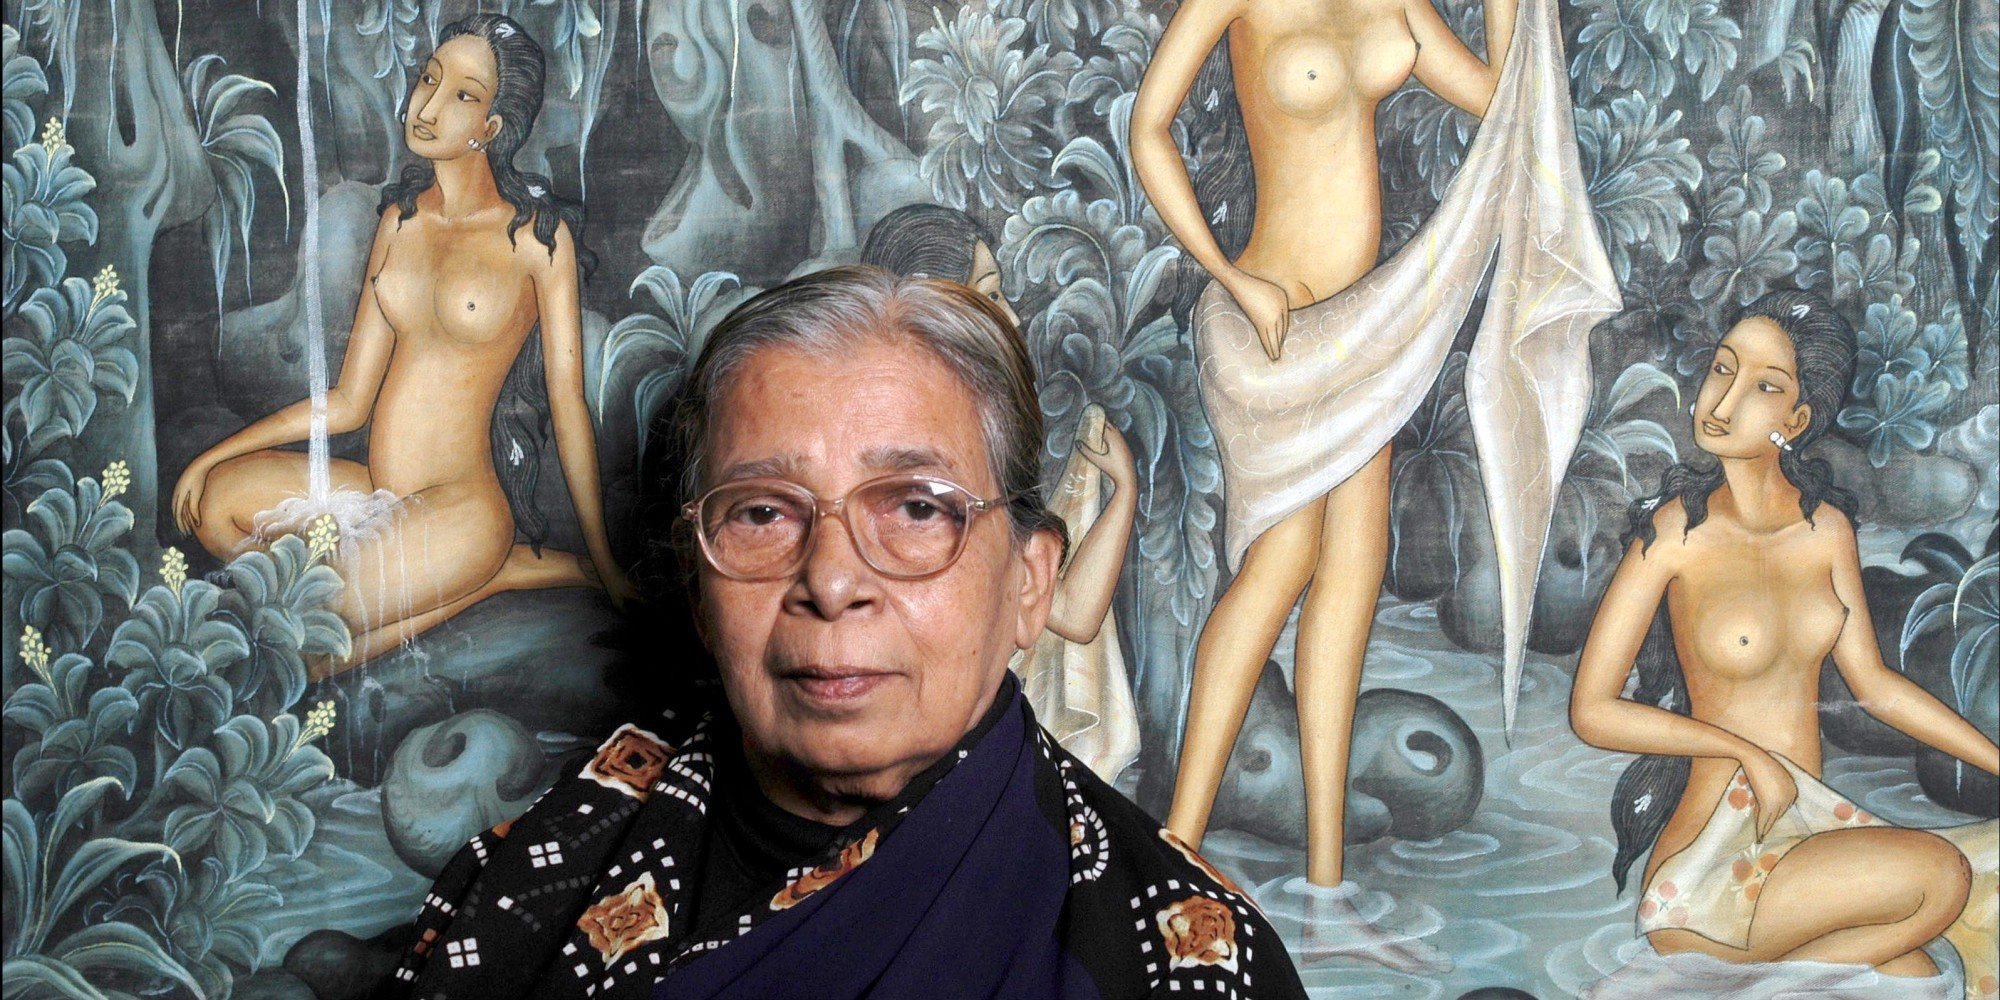 mahashweta devi Along with economic, political, sexual, social exploitation, and god knows what else, colonialism drained south asia of its resources this much we know and agree on.